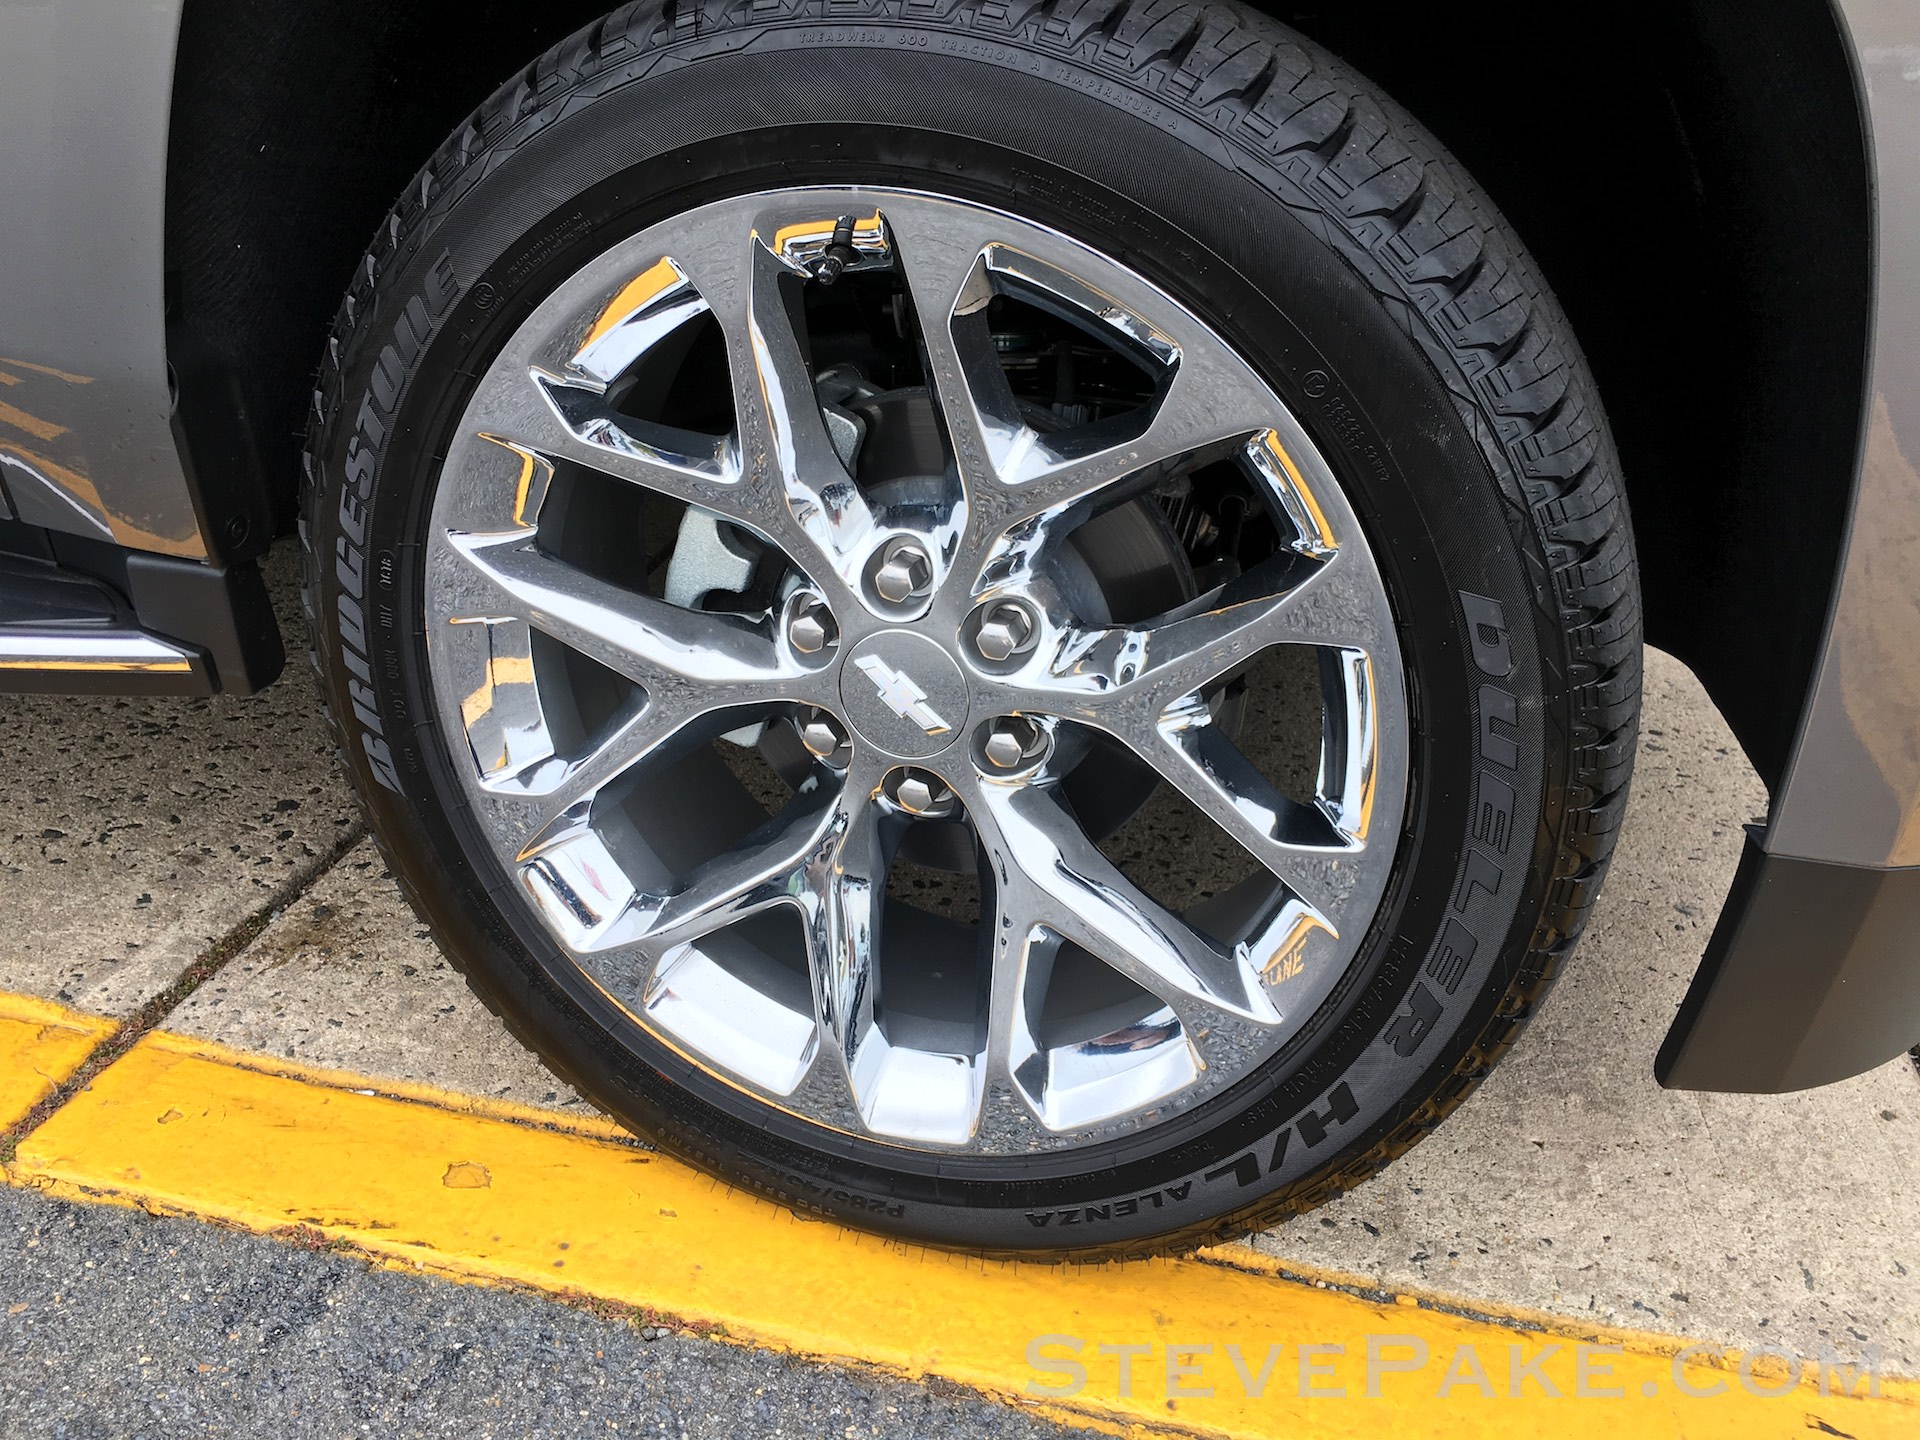 """Beware of potential noise and cabin vibration issues especially with the 22"""" wheels, but mostly has to do with the tires. Be sure to thoroughly test drive including up to highway speeds to check."""